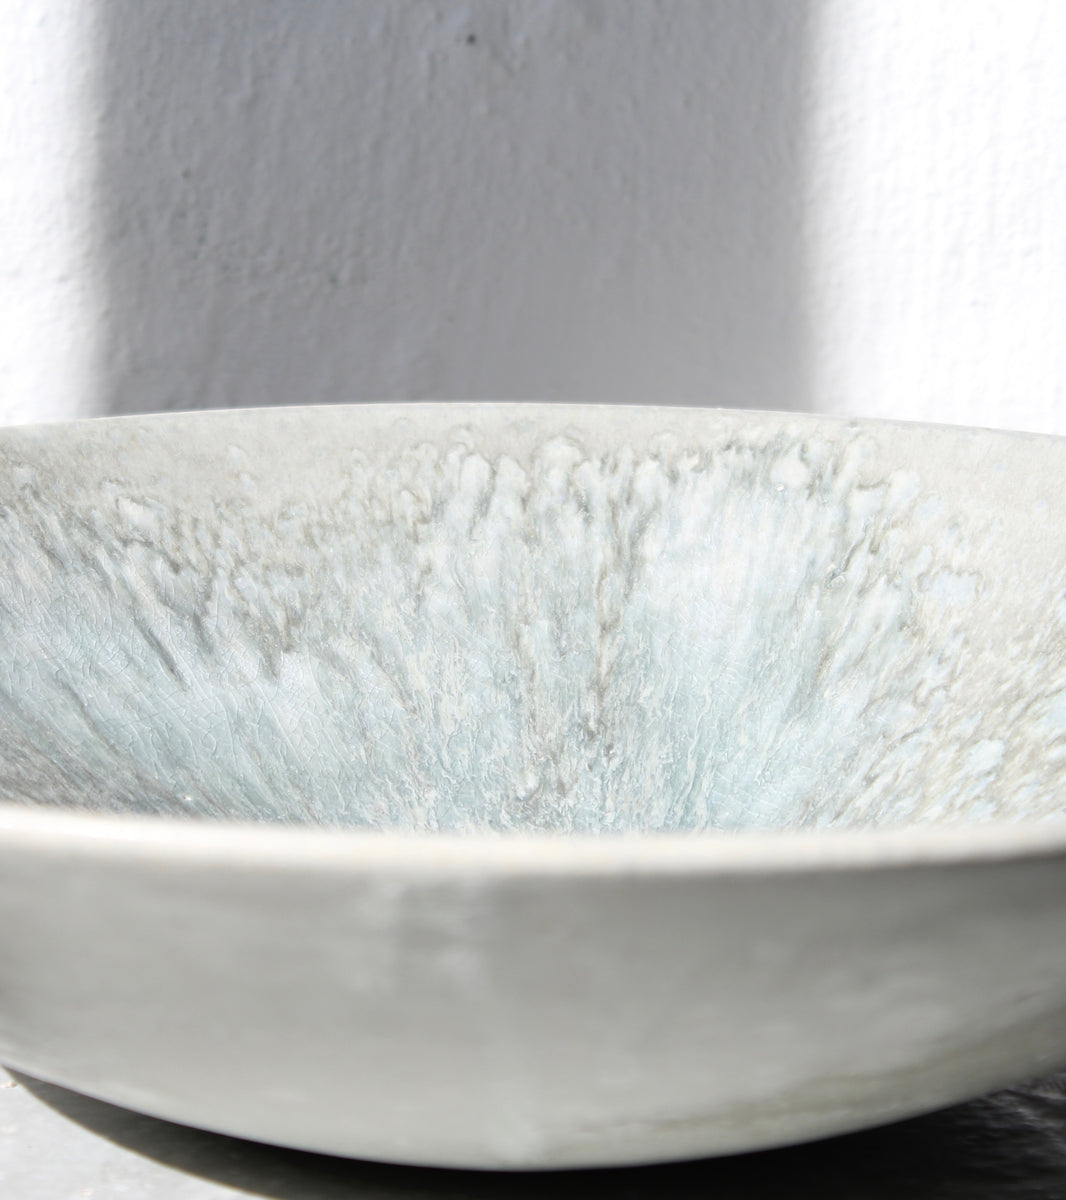 '#121' Large Medium Depp Charger <br> Aquatic Coloured Glaze